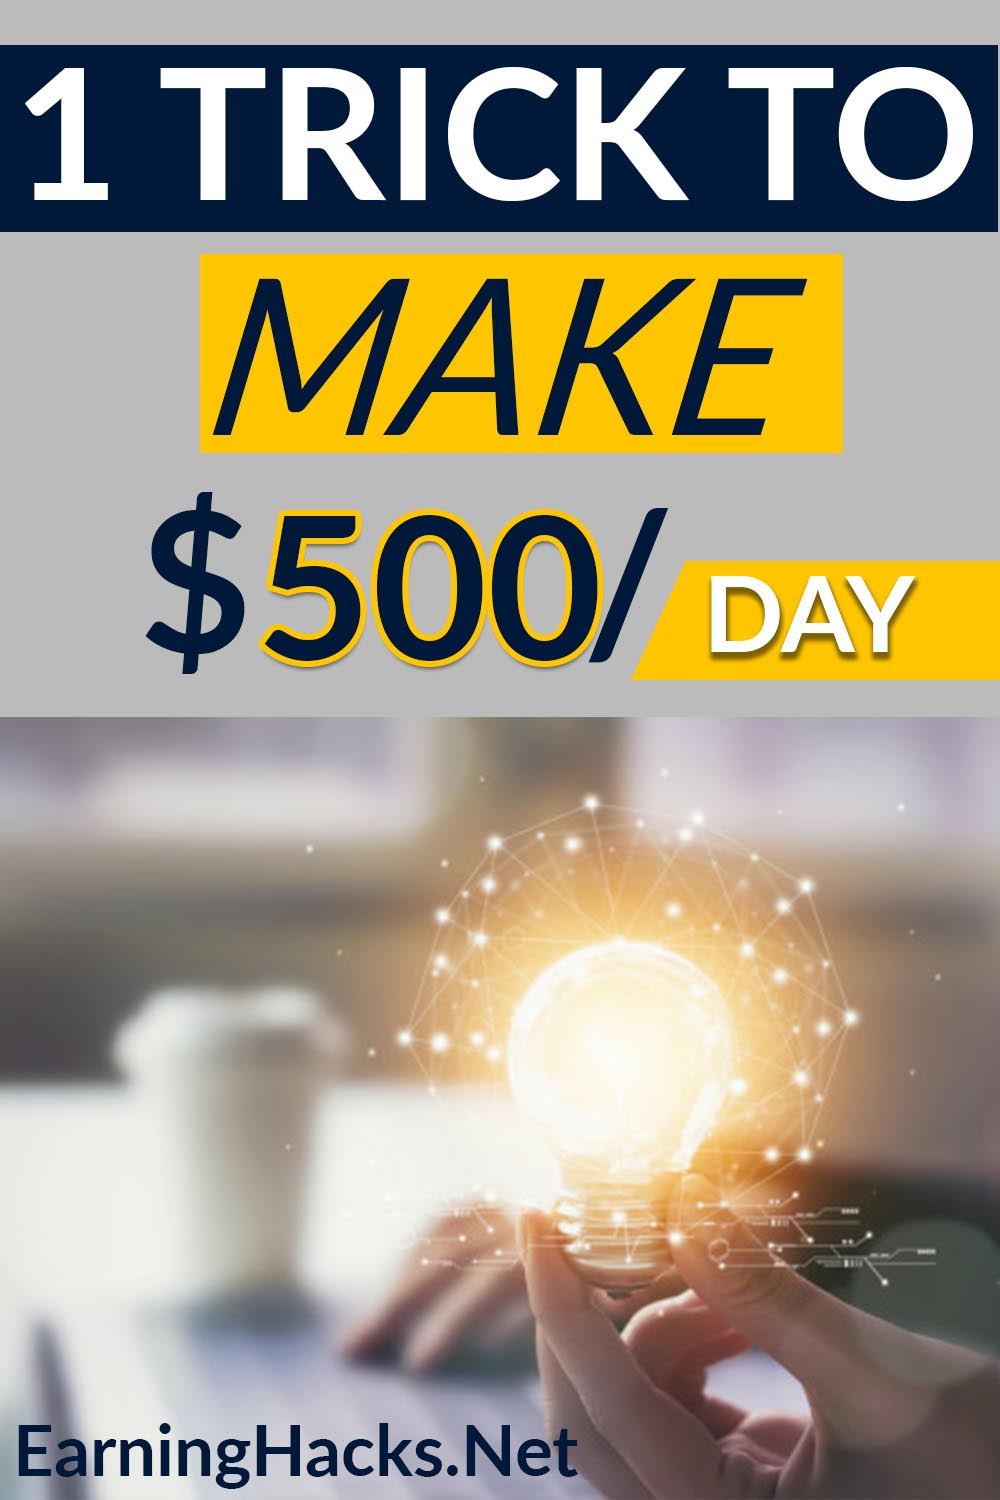 What is the Trick to Make 500 Dollar Per Day?